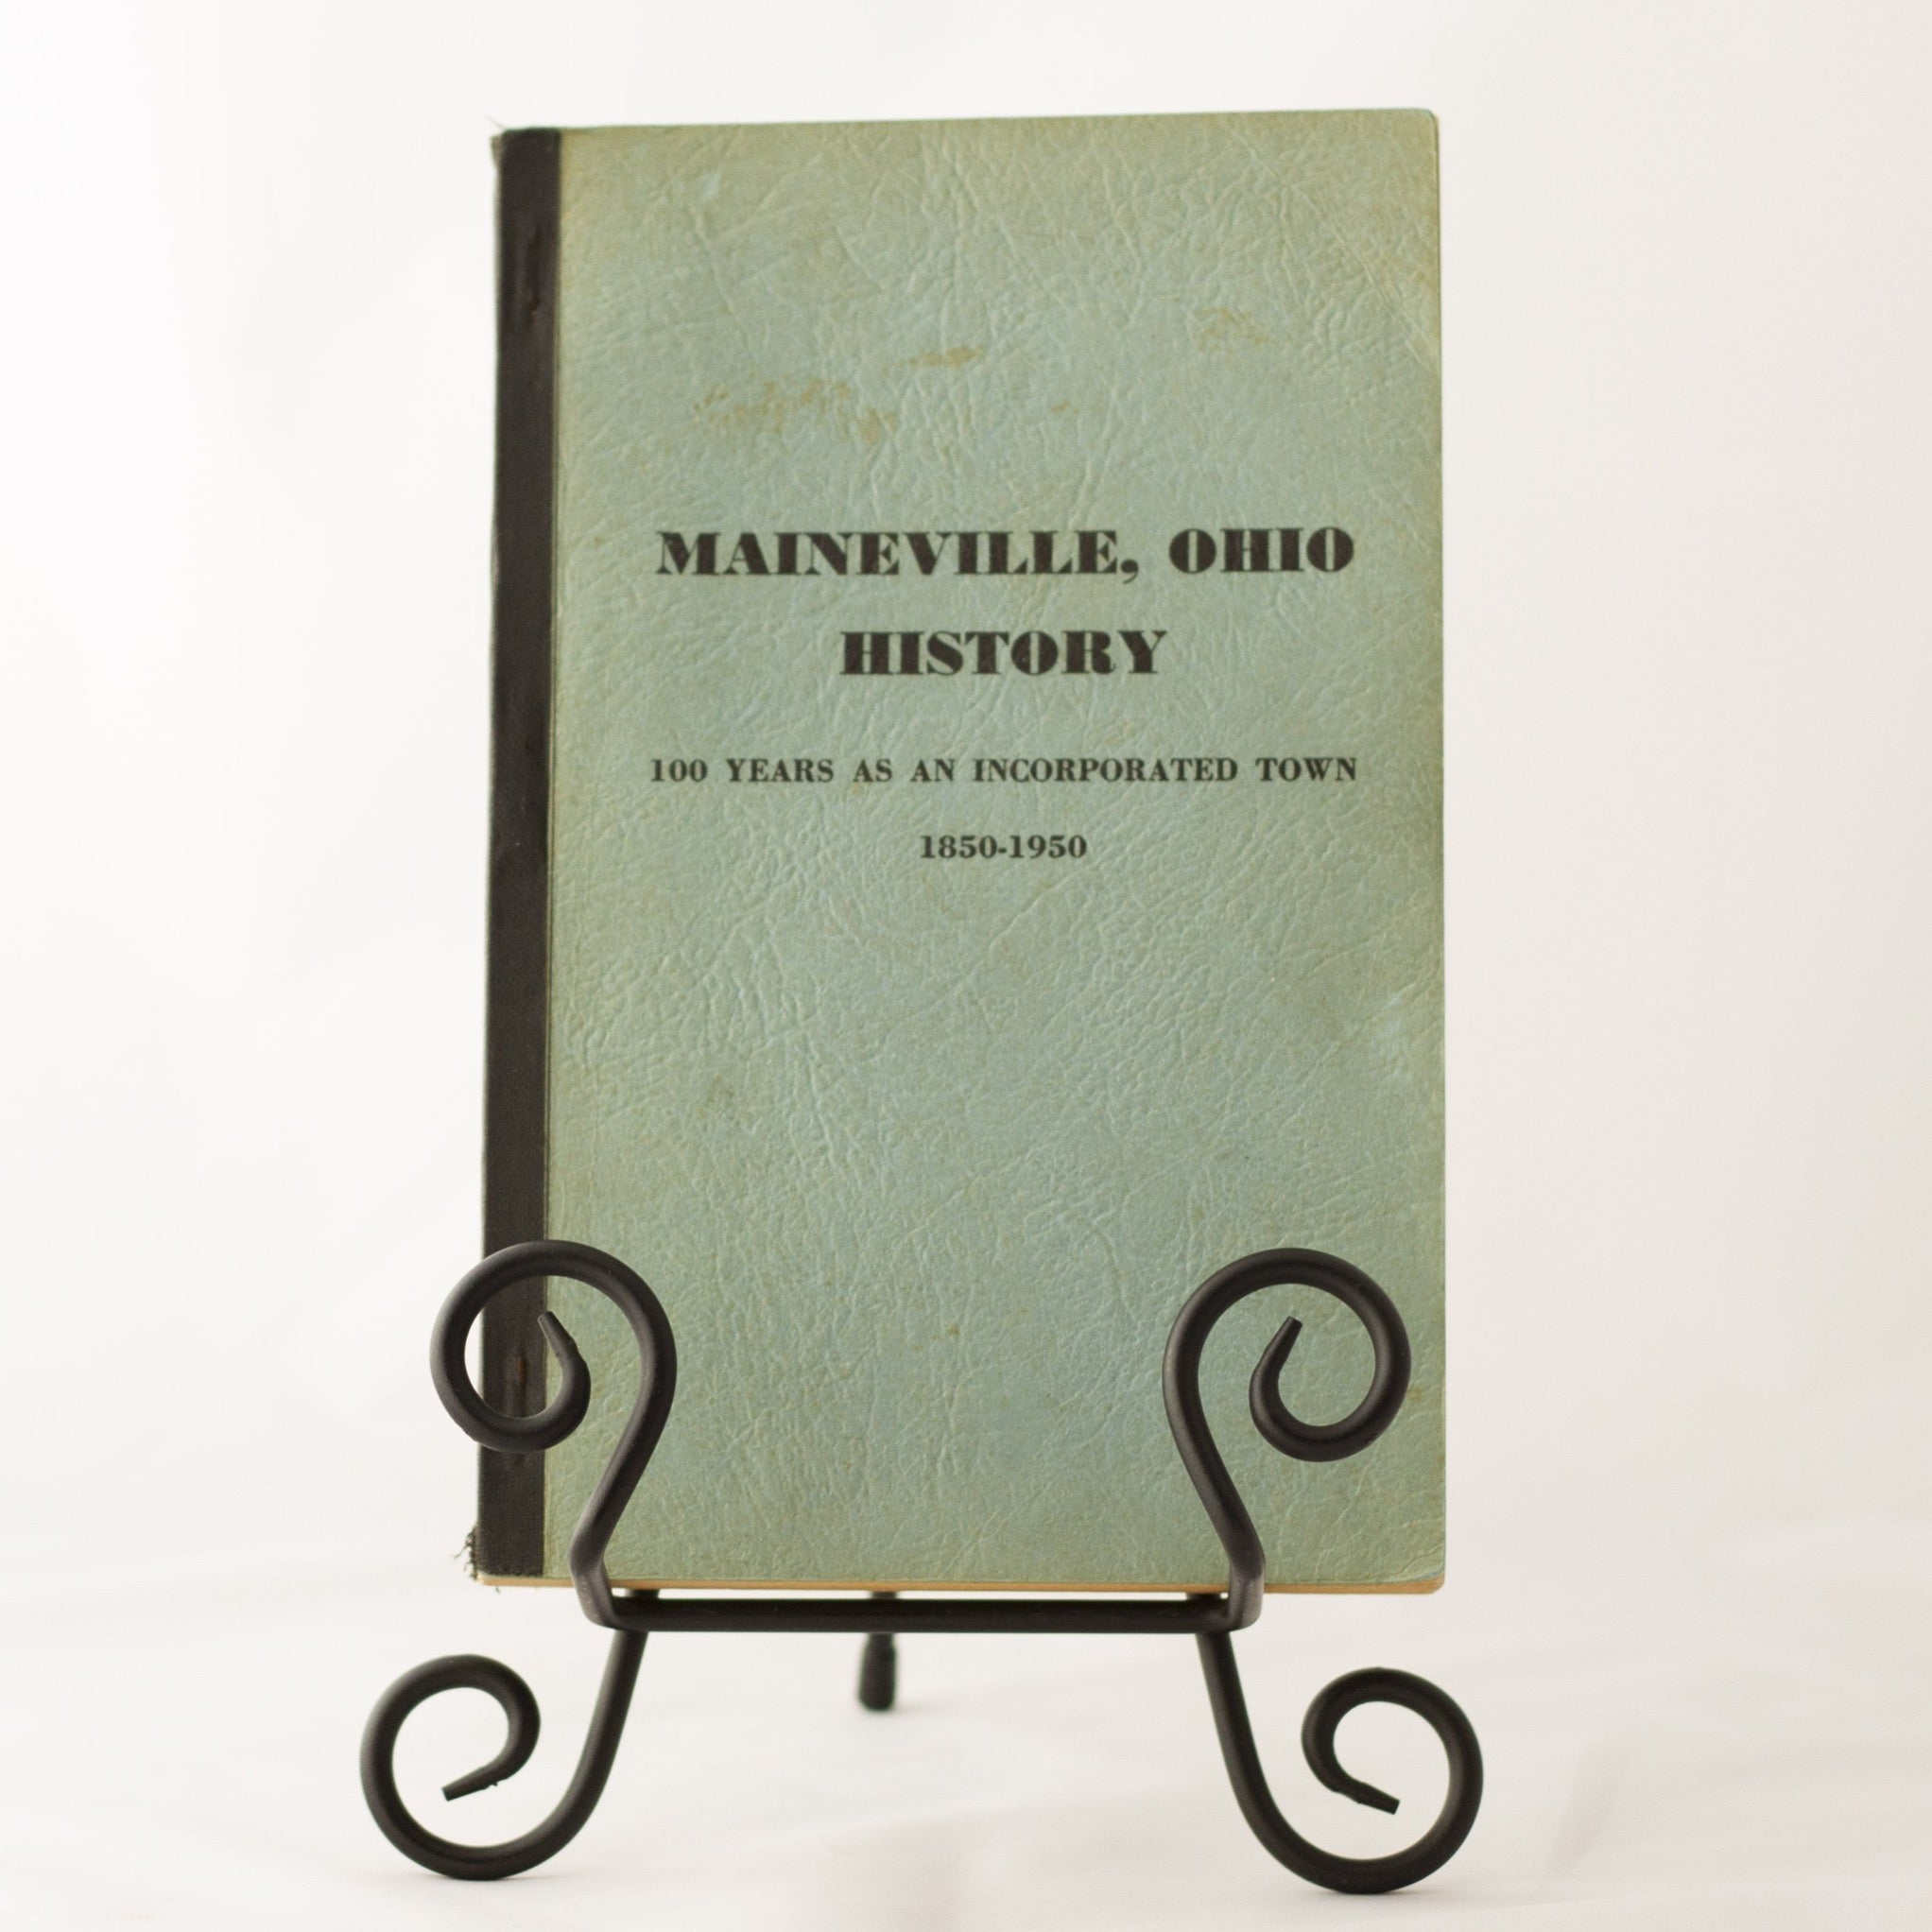 MAINEVILLE OHIO HISTORY 100 Years as Incorporated Town 1850 - 1950 by Robert Brenner